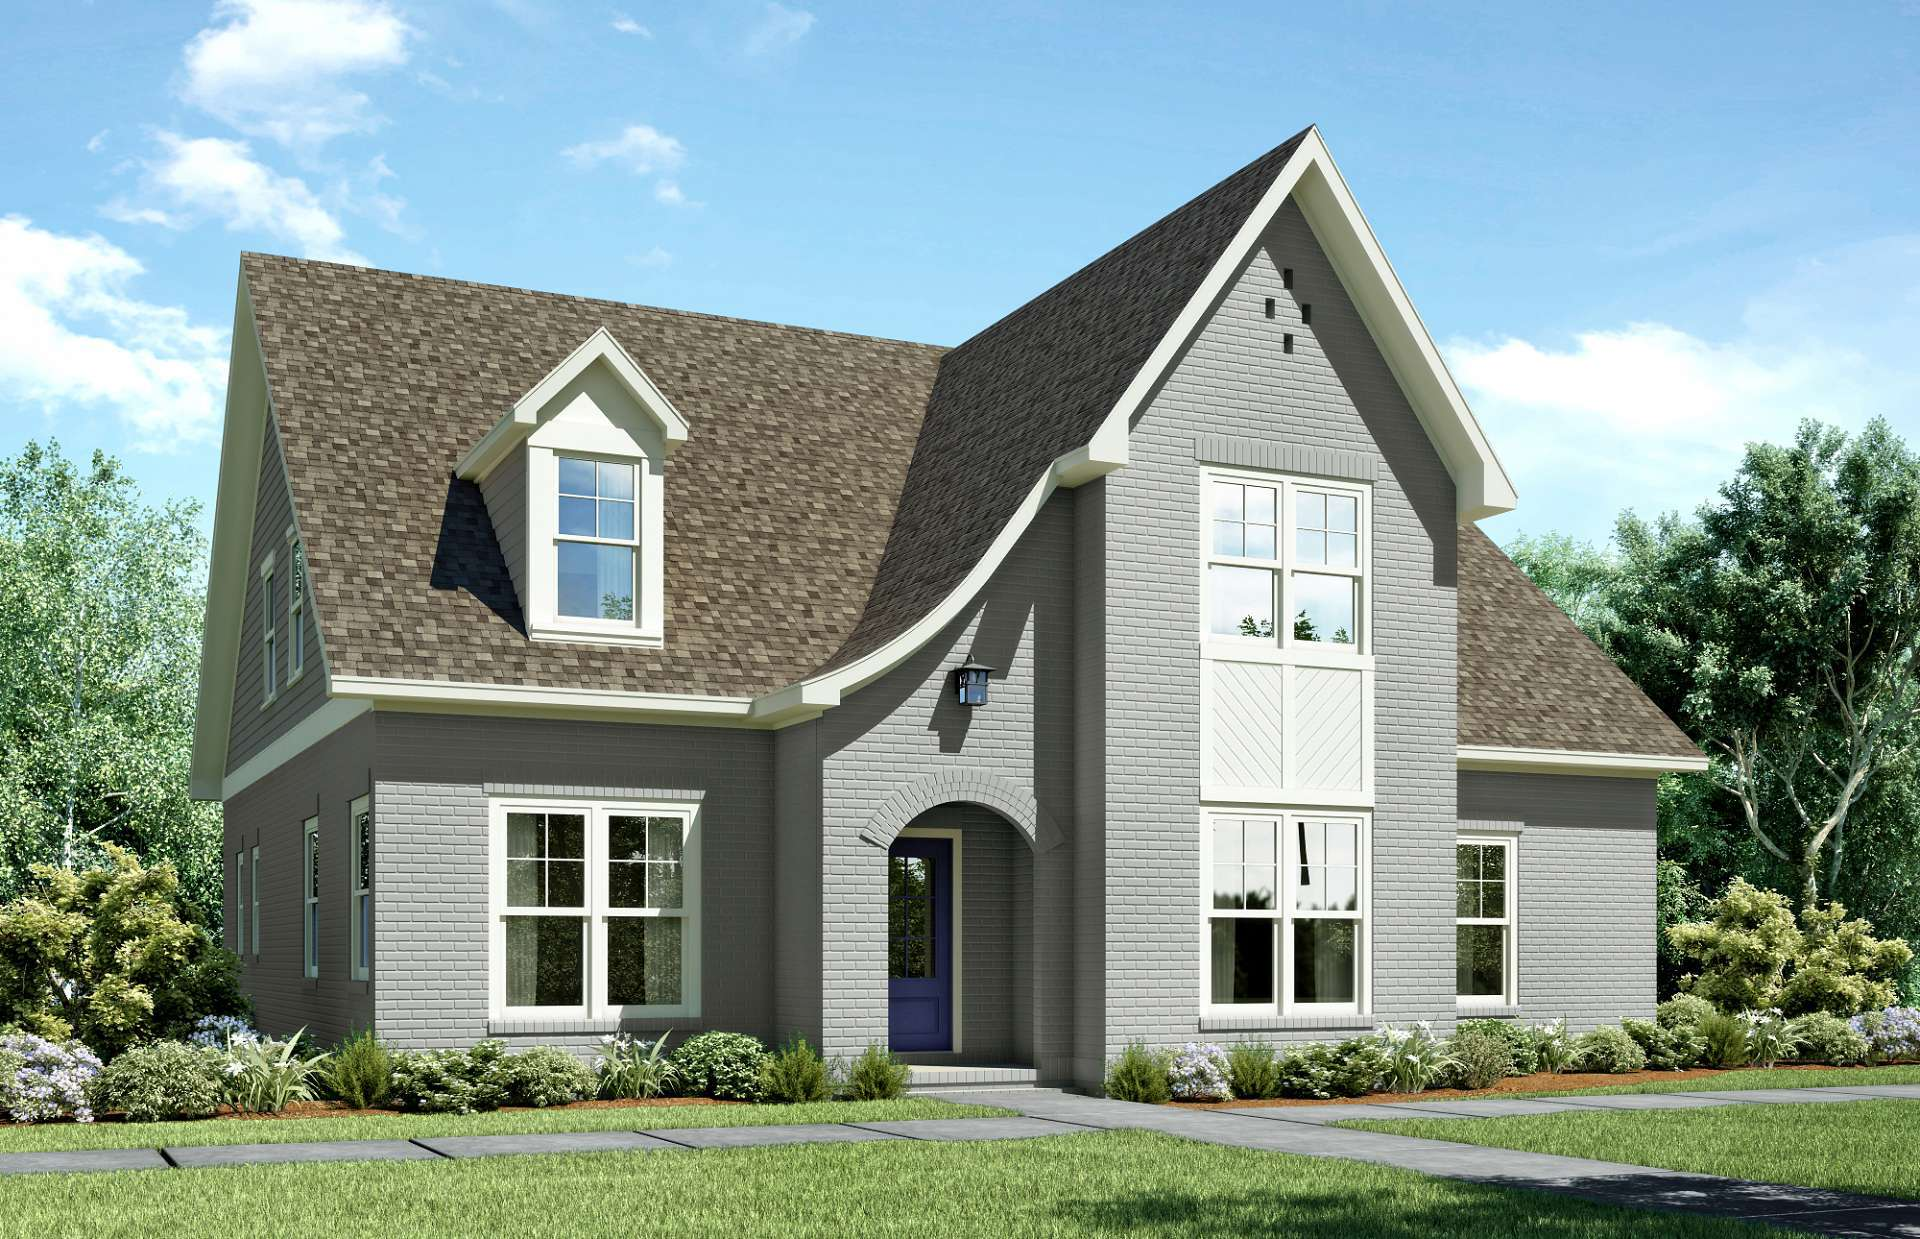 Single Family for Sale at Griffin Park At Eagle Point - Langley A 4639 Eagle Point Dr Birmingham, Alabama 35242 United States